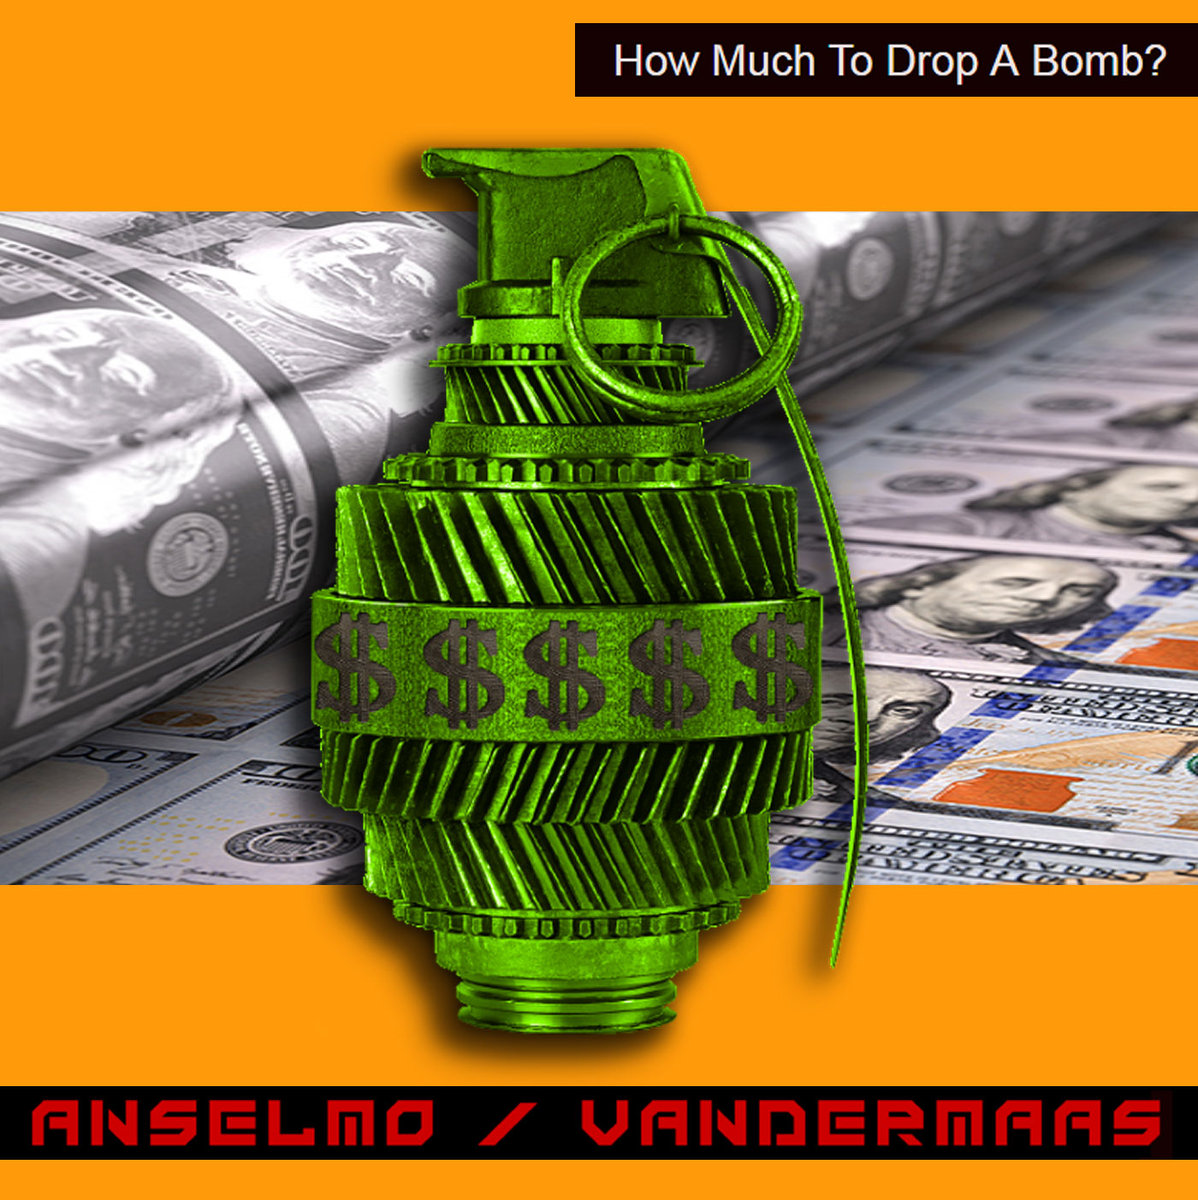 Anselmo/VanderMaas - How Much To Drop A Bomb (Official Video)